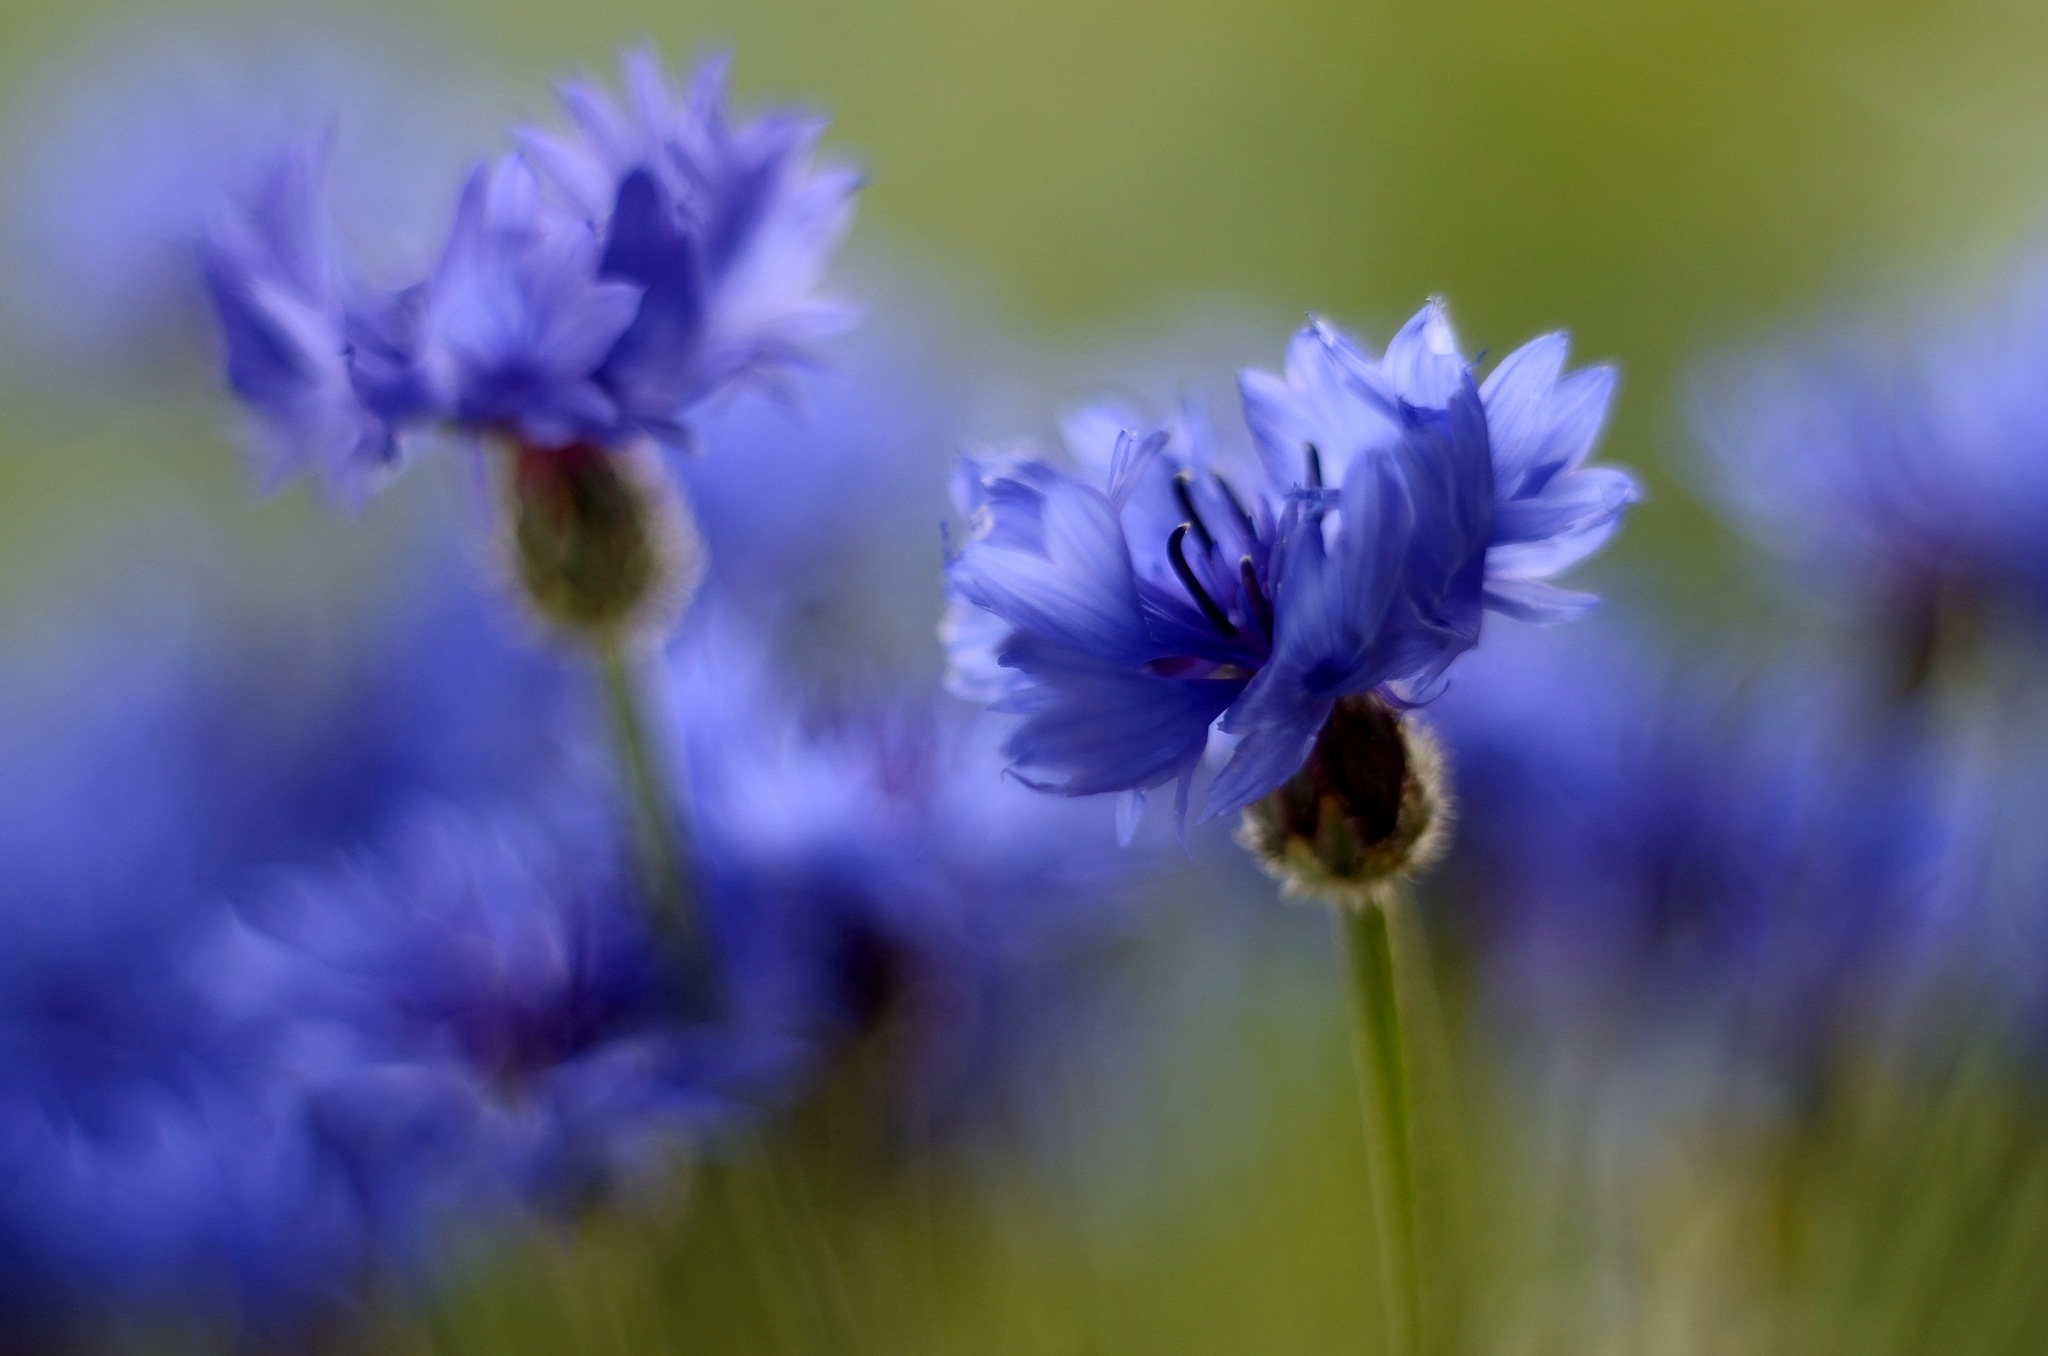 The cornflowers by habibi27